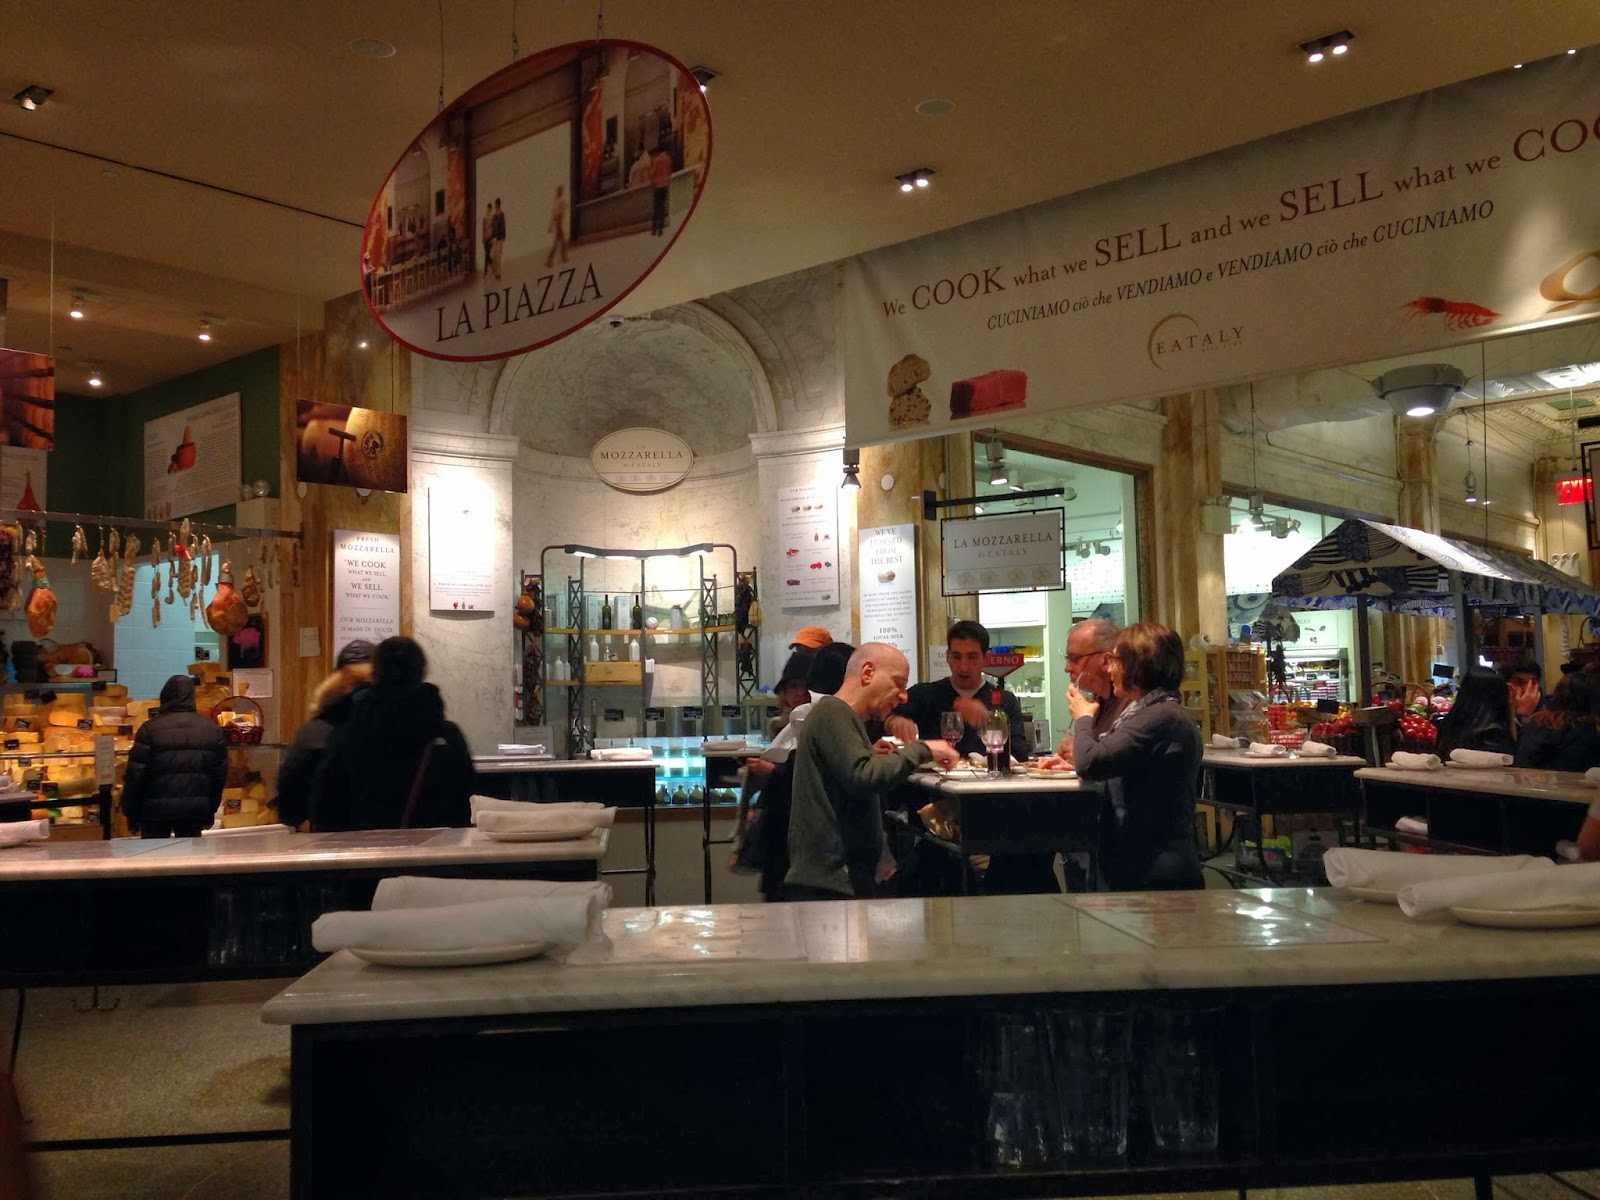 Lauren Loves to Eat: An Impromptu Lunch at Eataly